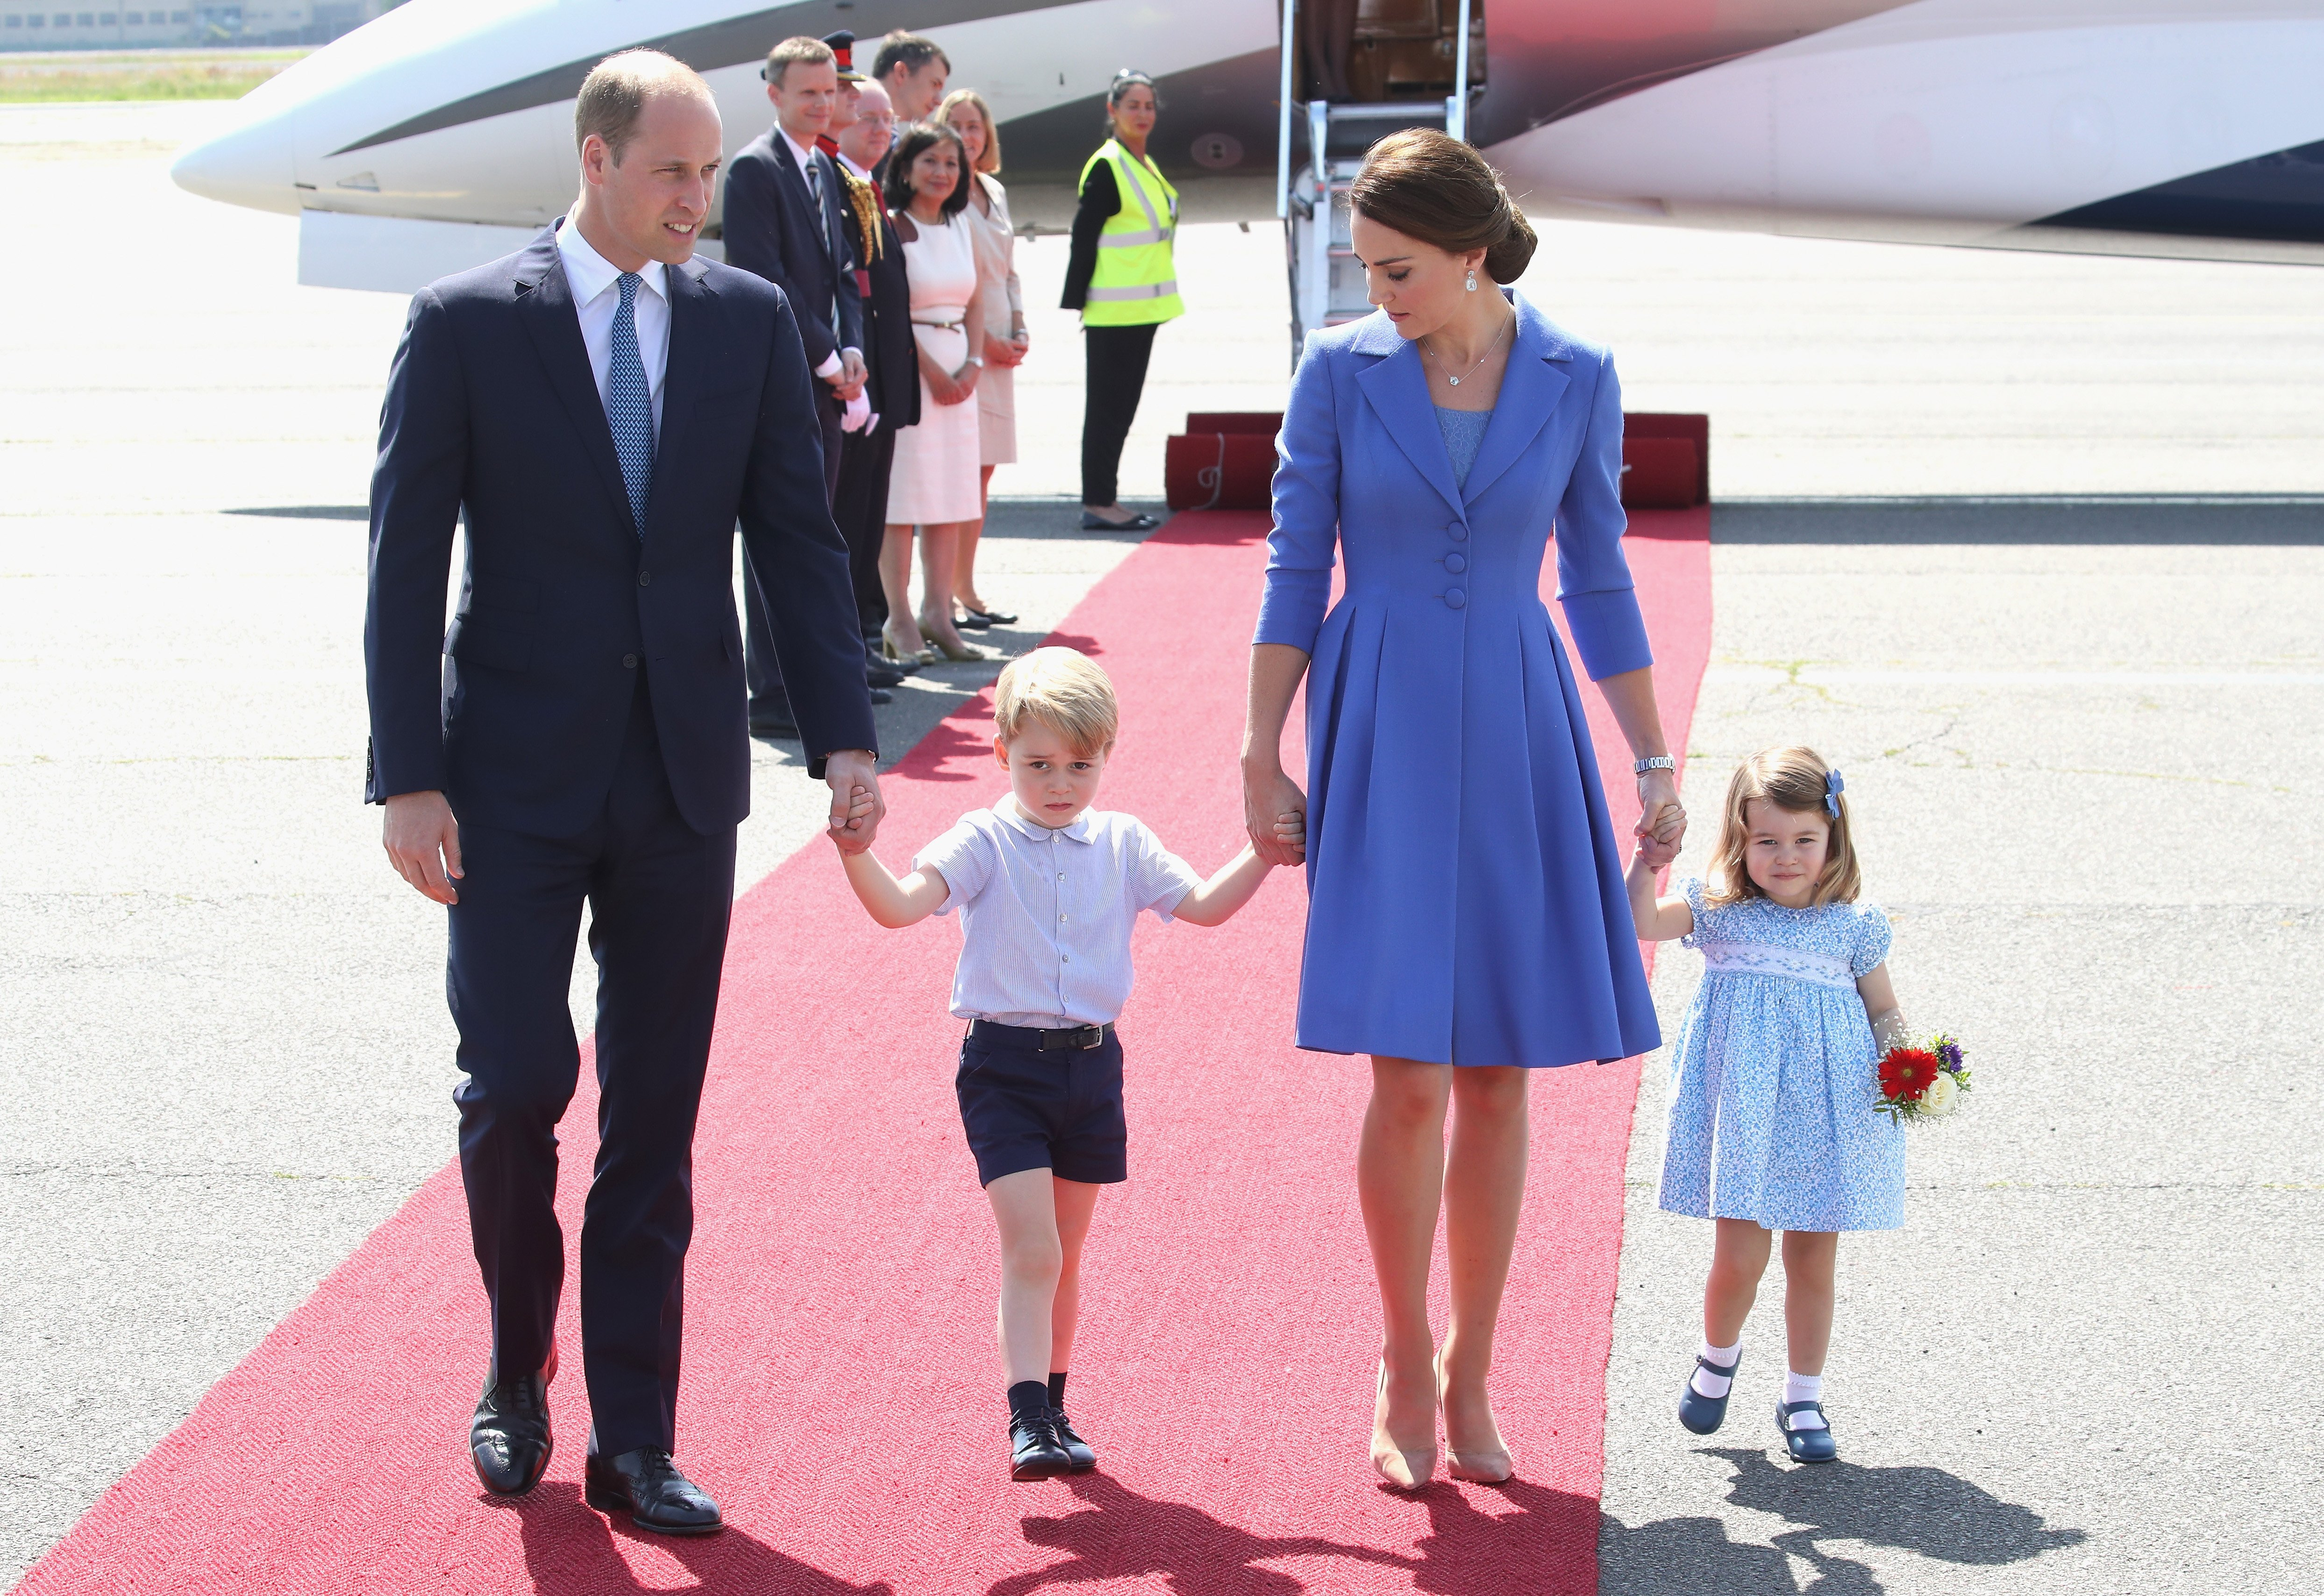 Prince William, Duke of Cambridge, Catherine, Duchess of Cambridge, Prince George of Cambridge and Princess Charlotte of Cambridge arrive at Berlin Tegel Airport during an official visit to Poland and Germany on July 19, 2017  | Photo: GettyImages